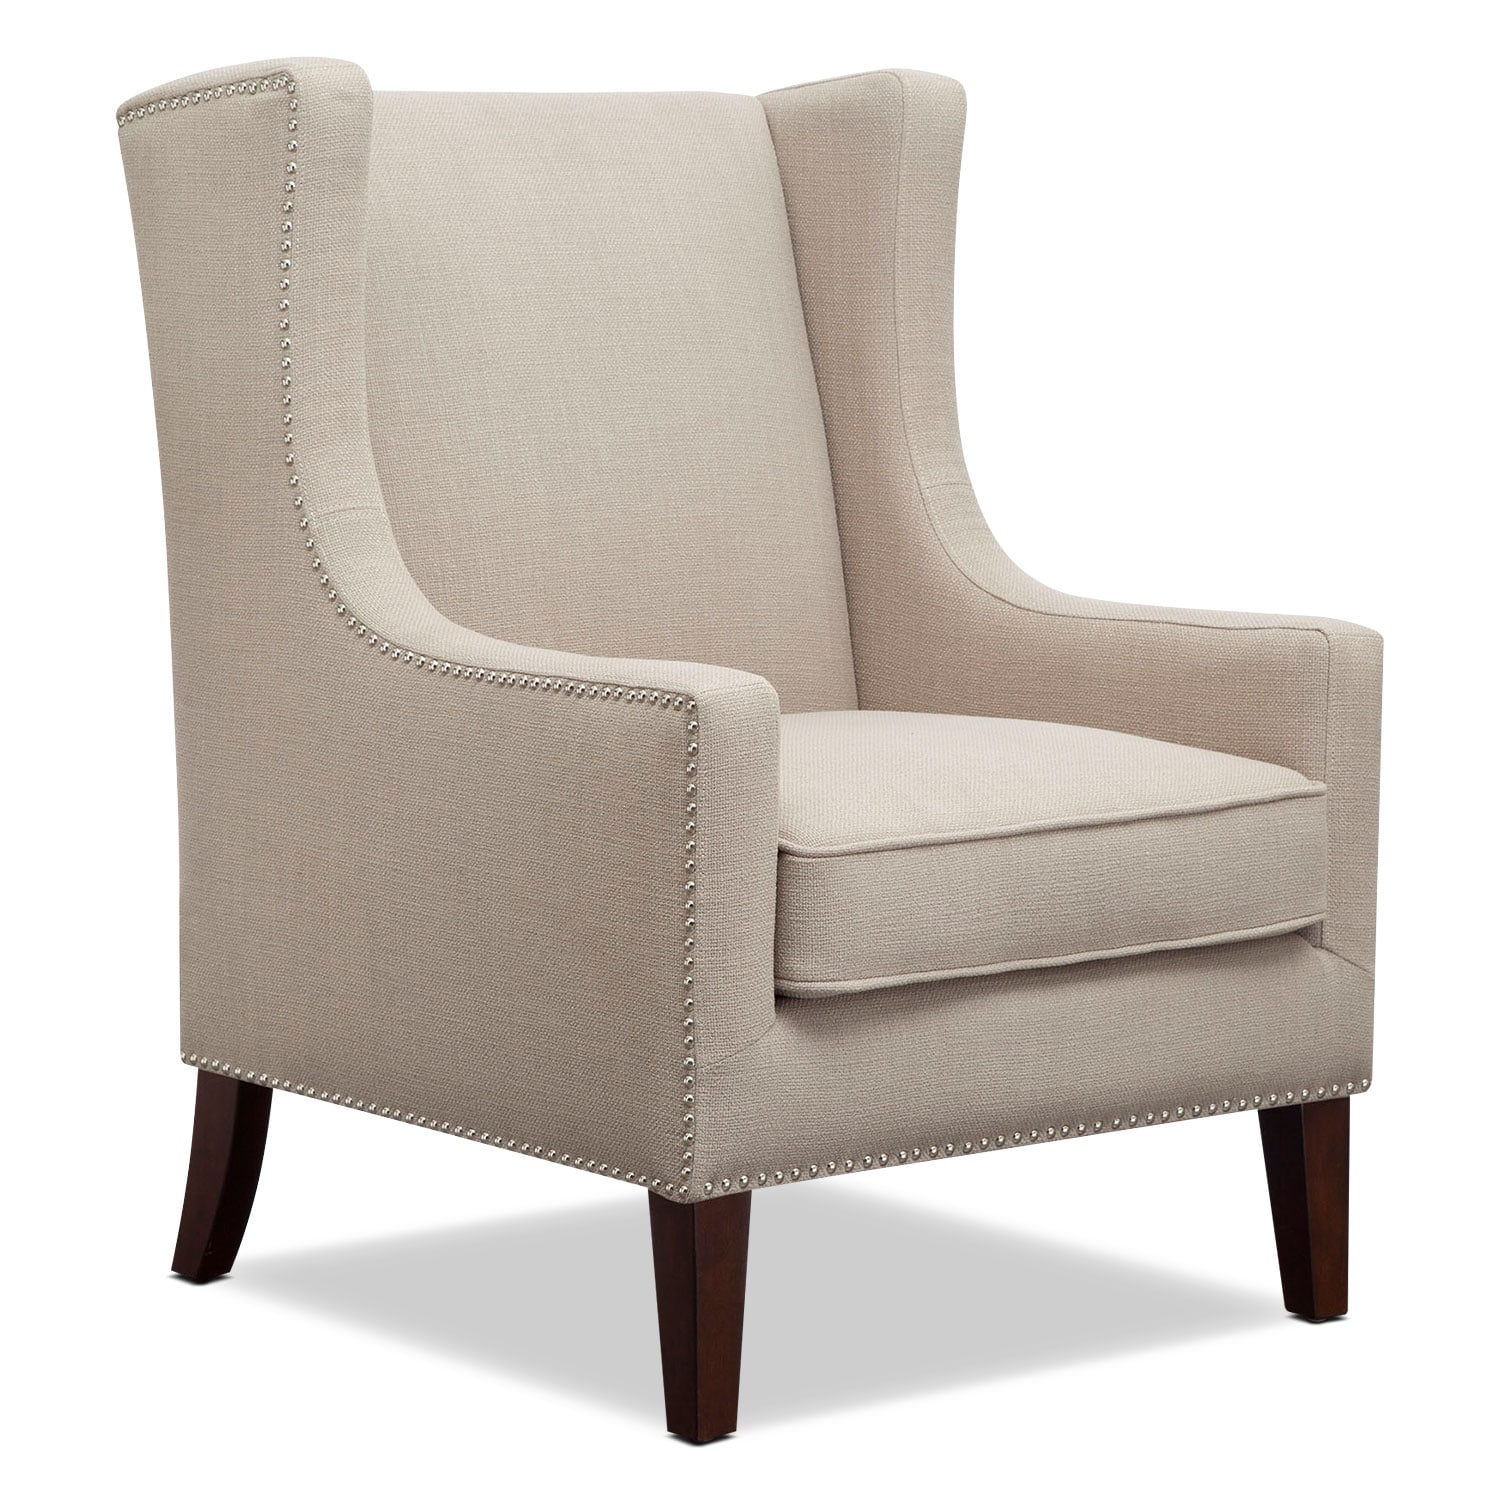 Living Room Furniture - Blythe Accent Chair - Linen